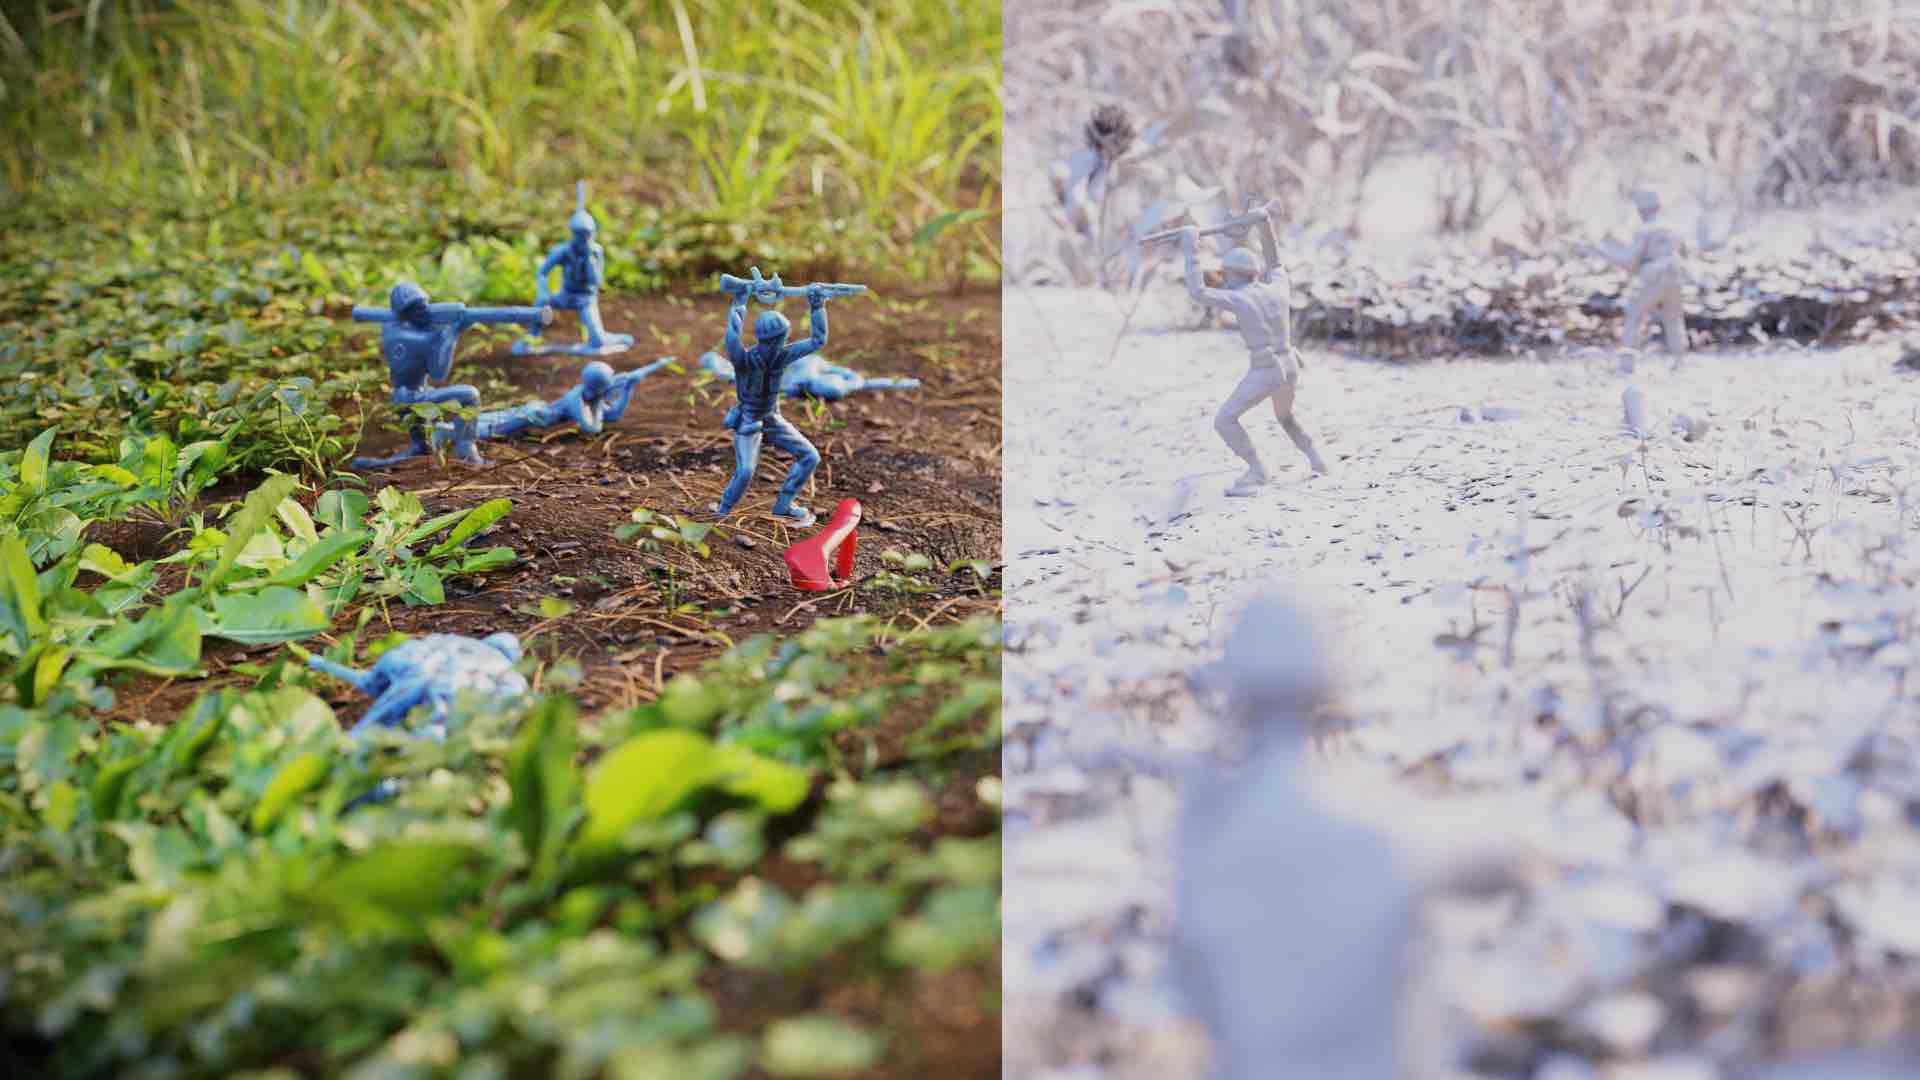 Side by side comparison image of army men on the ground surrounded by plants rendered and without texture